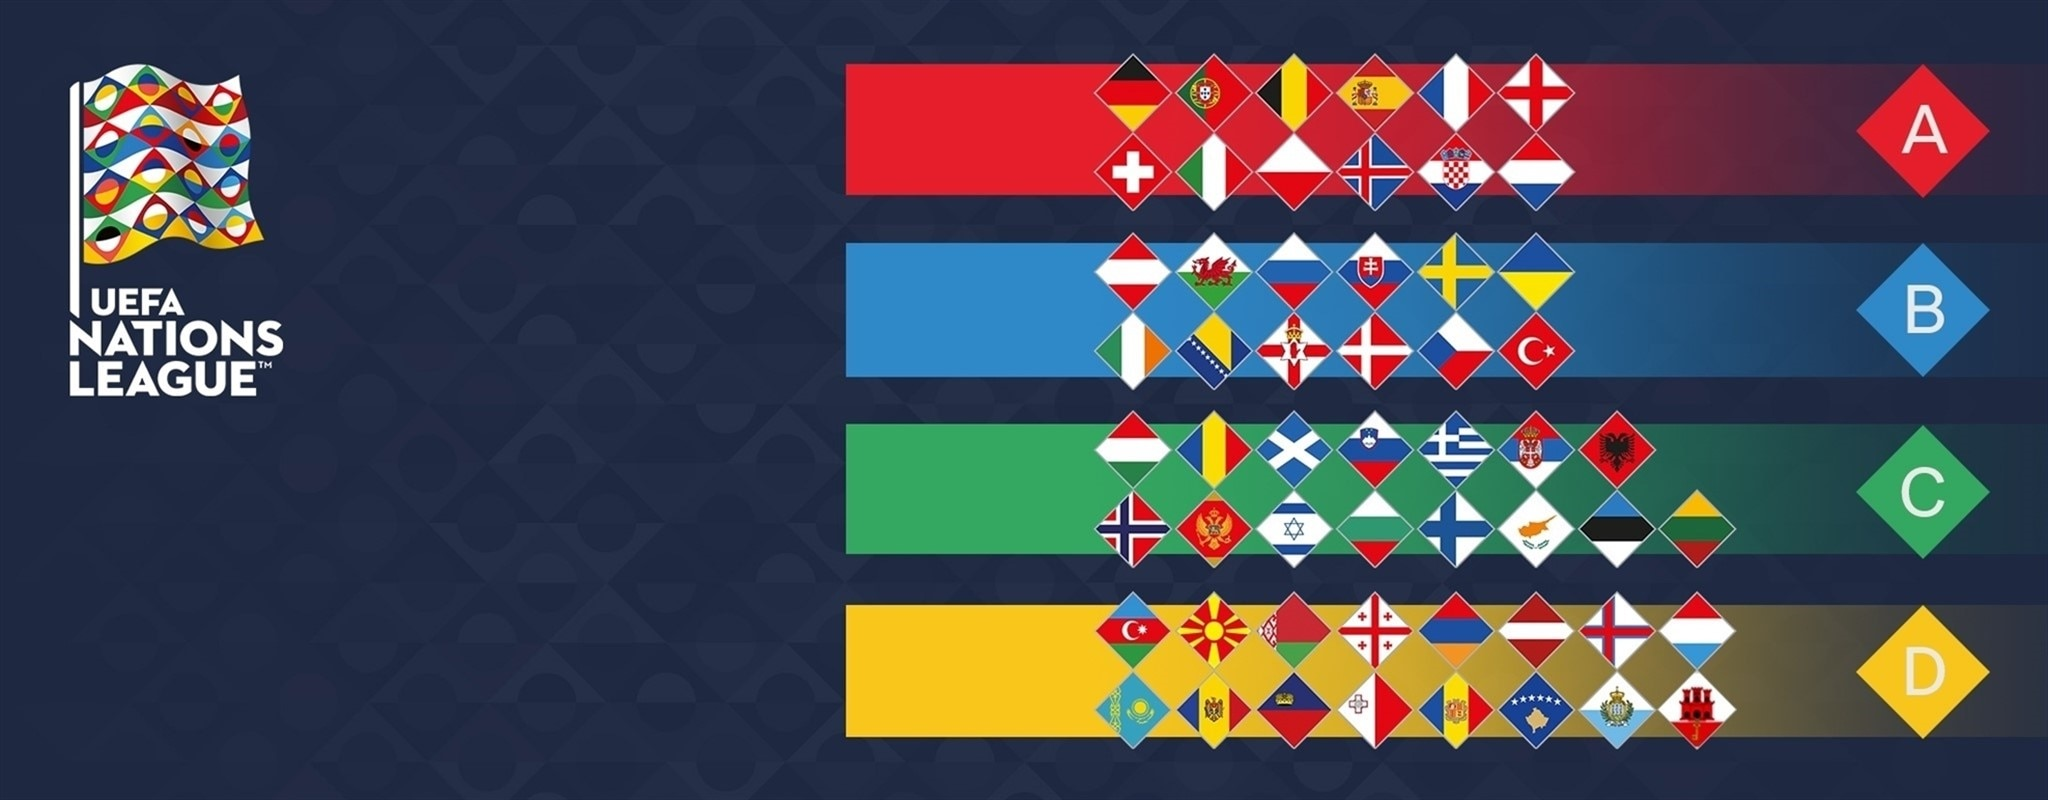 All you need to know: UEFA Nations League draw